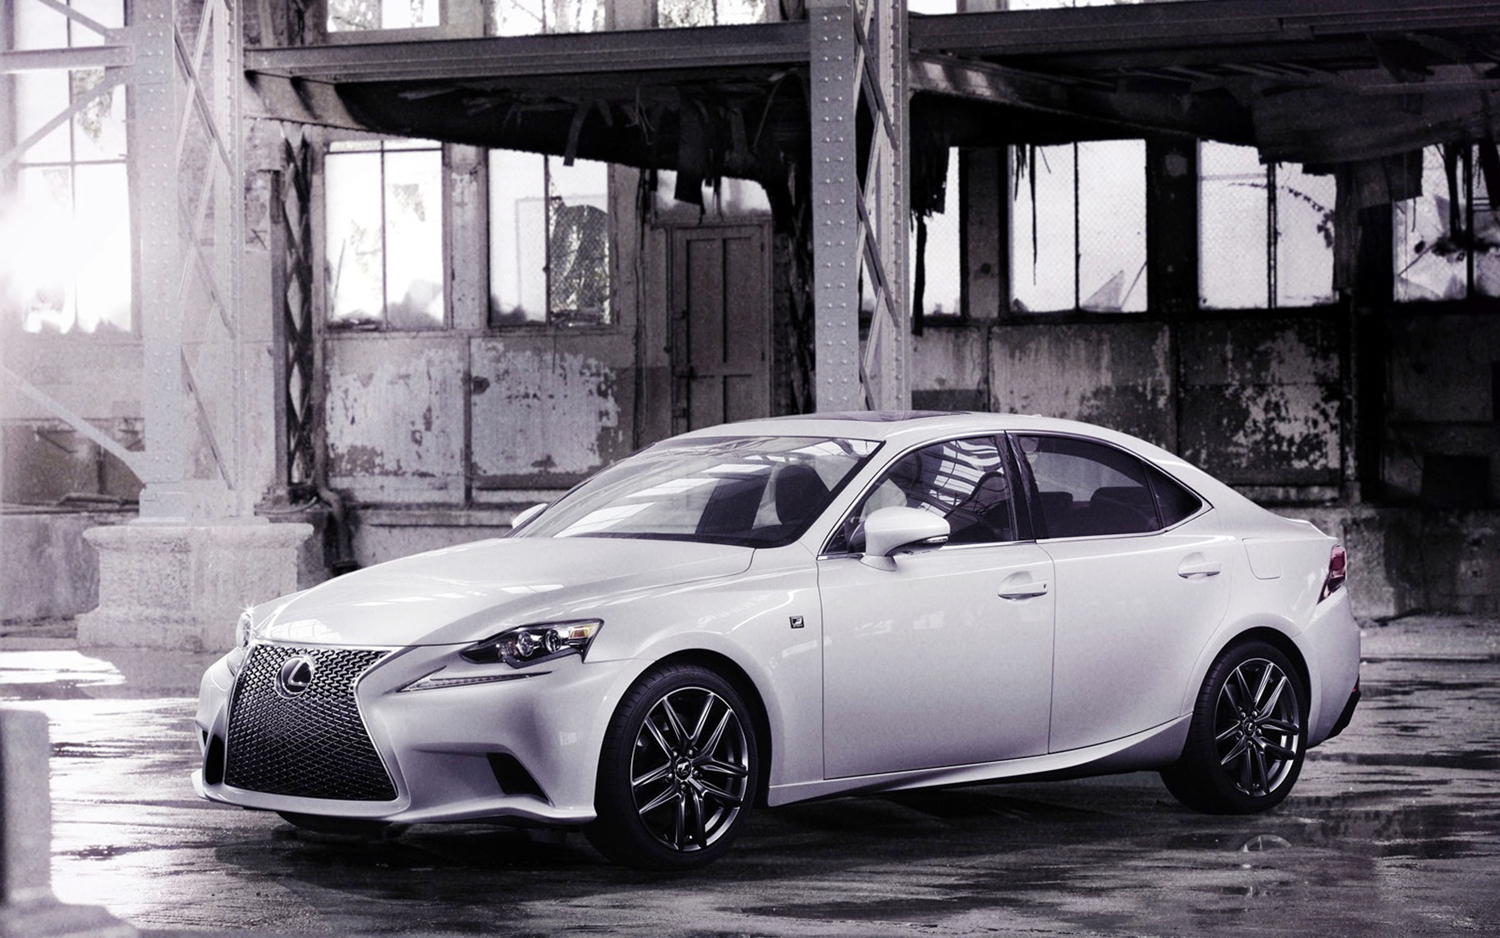 Thread Of The Day: Is The 2014 Lexus IS F Sport Styling Too Extreme?